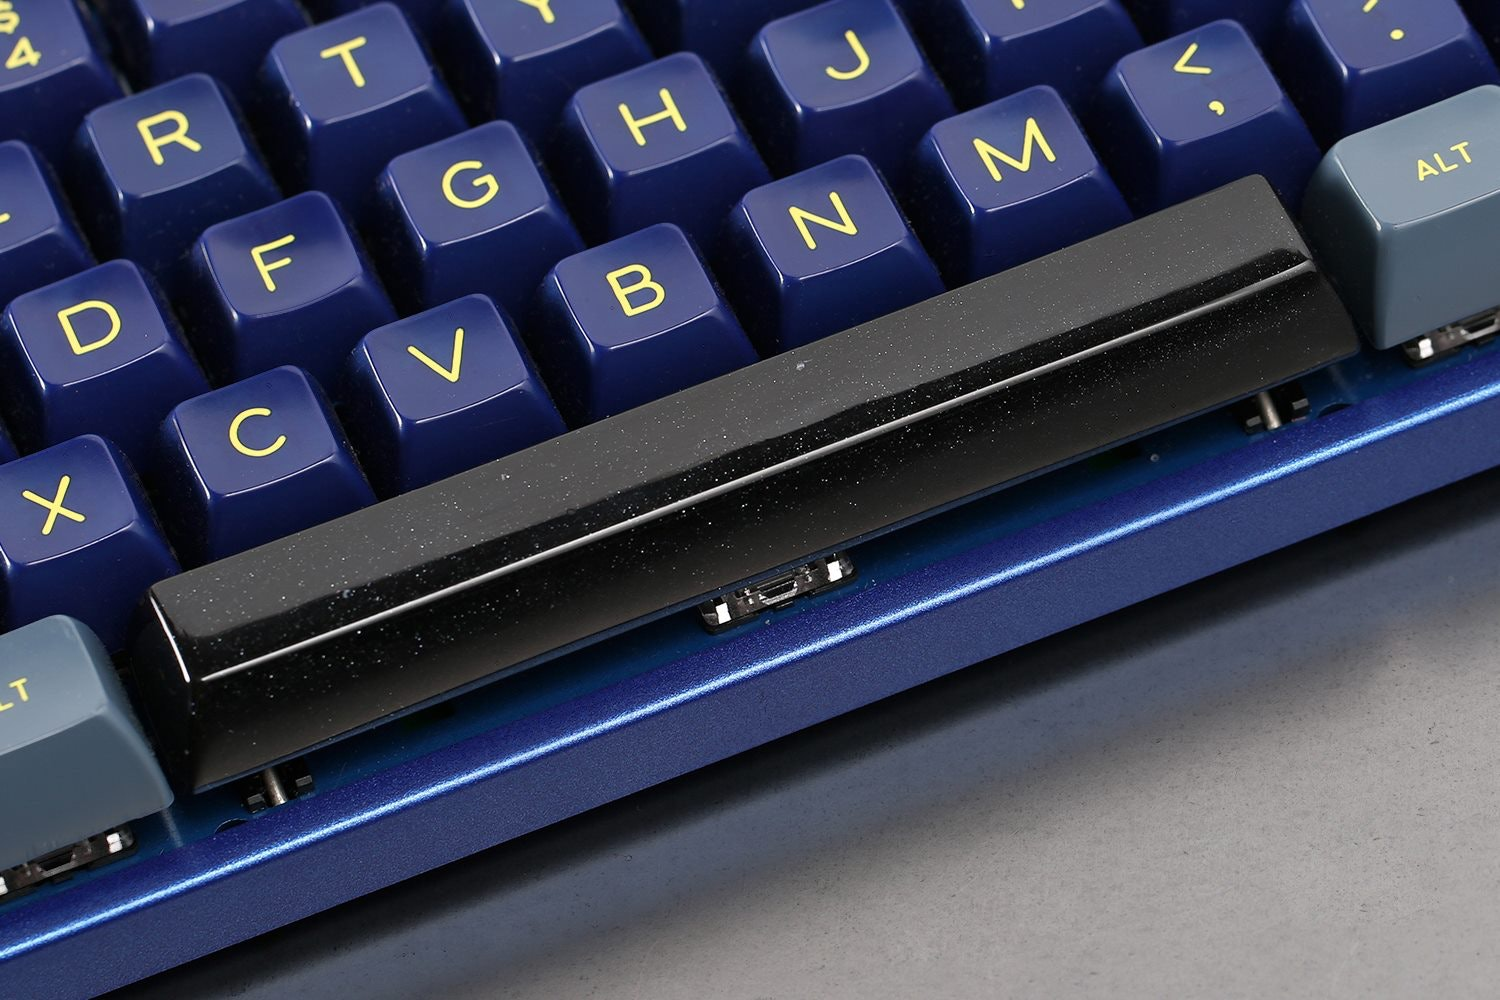 Jellykeys Spacebar - The First Frontier